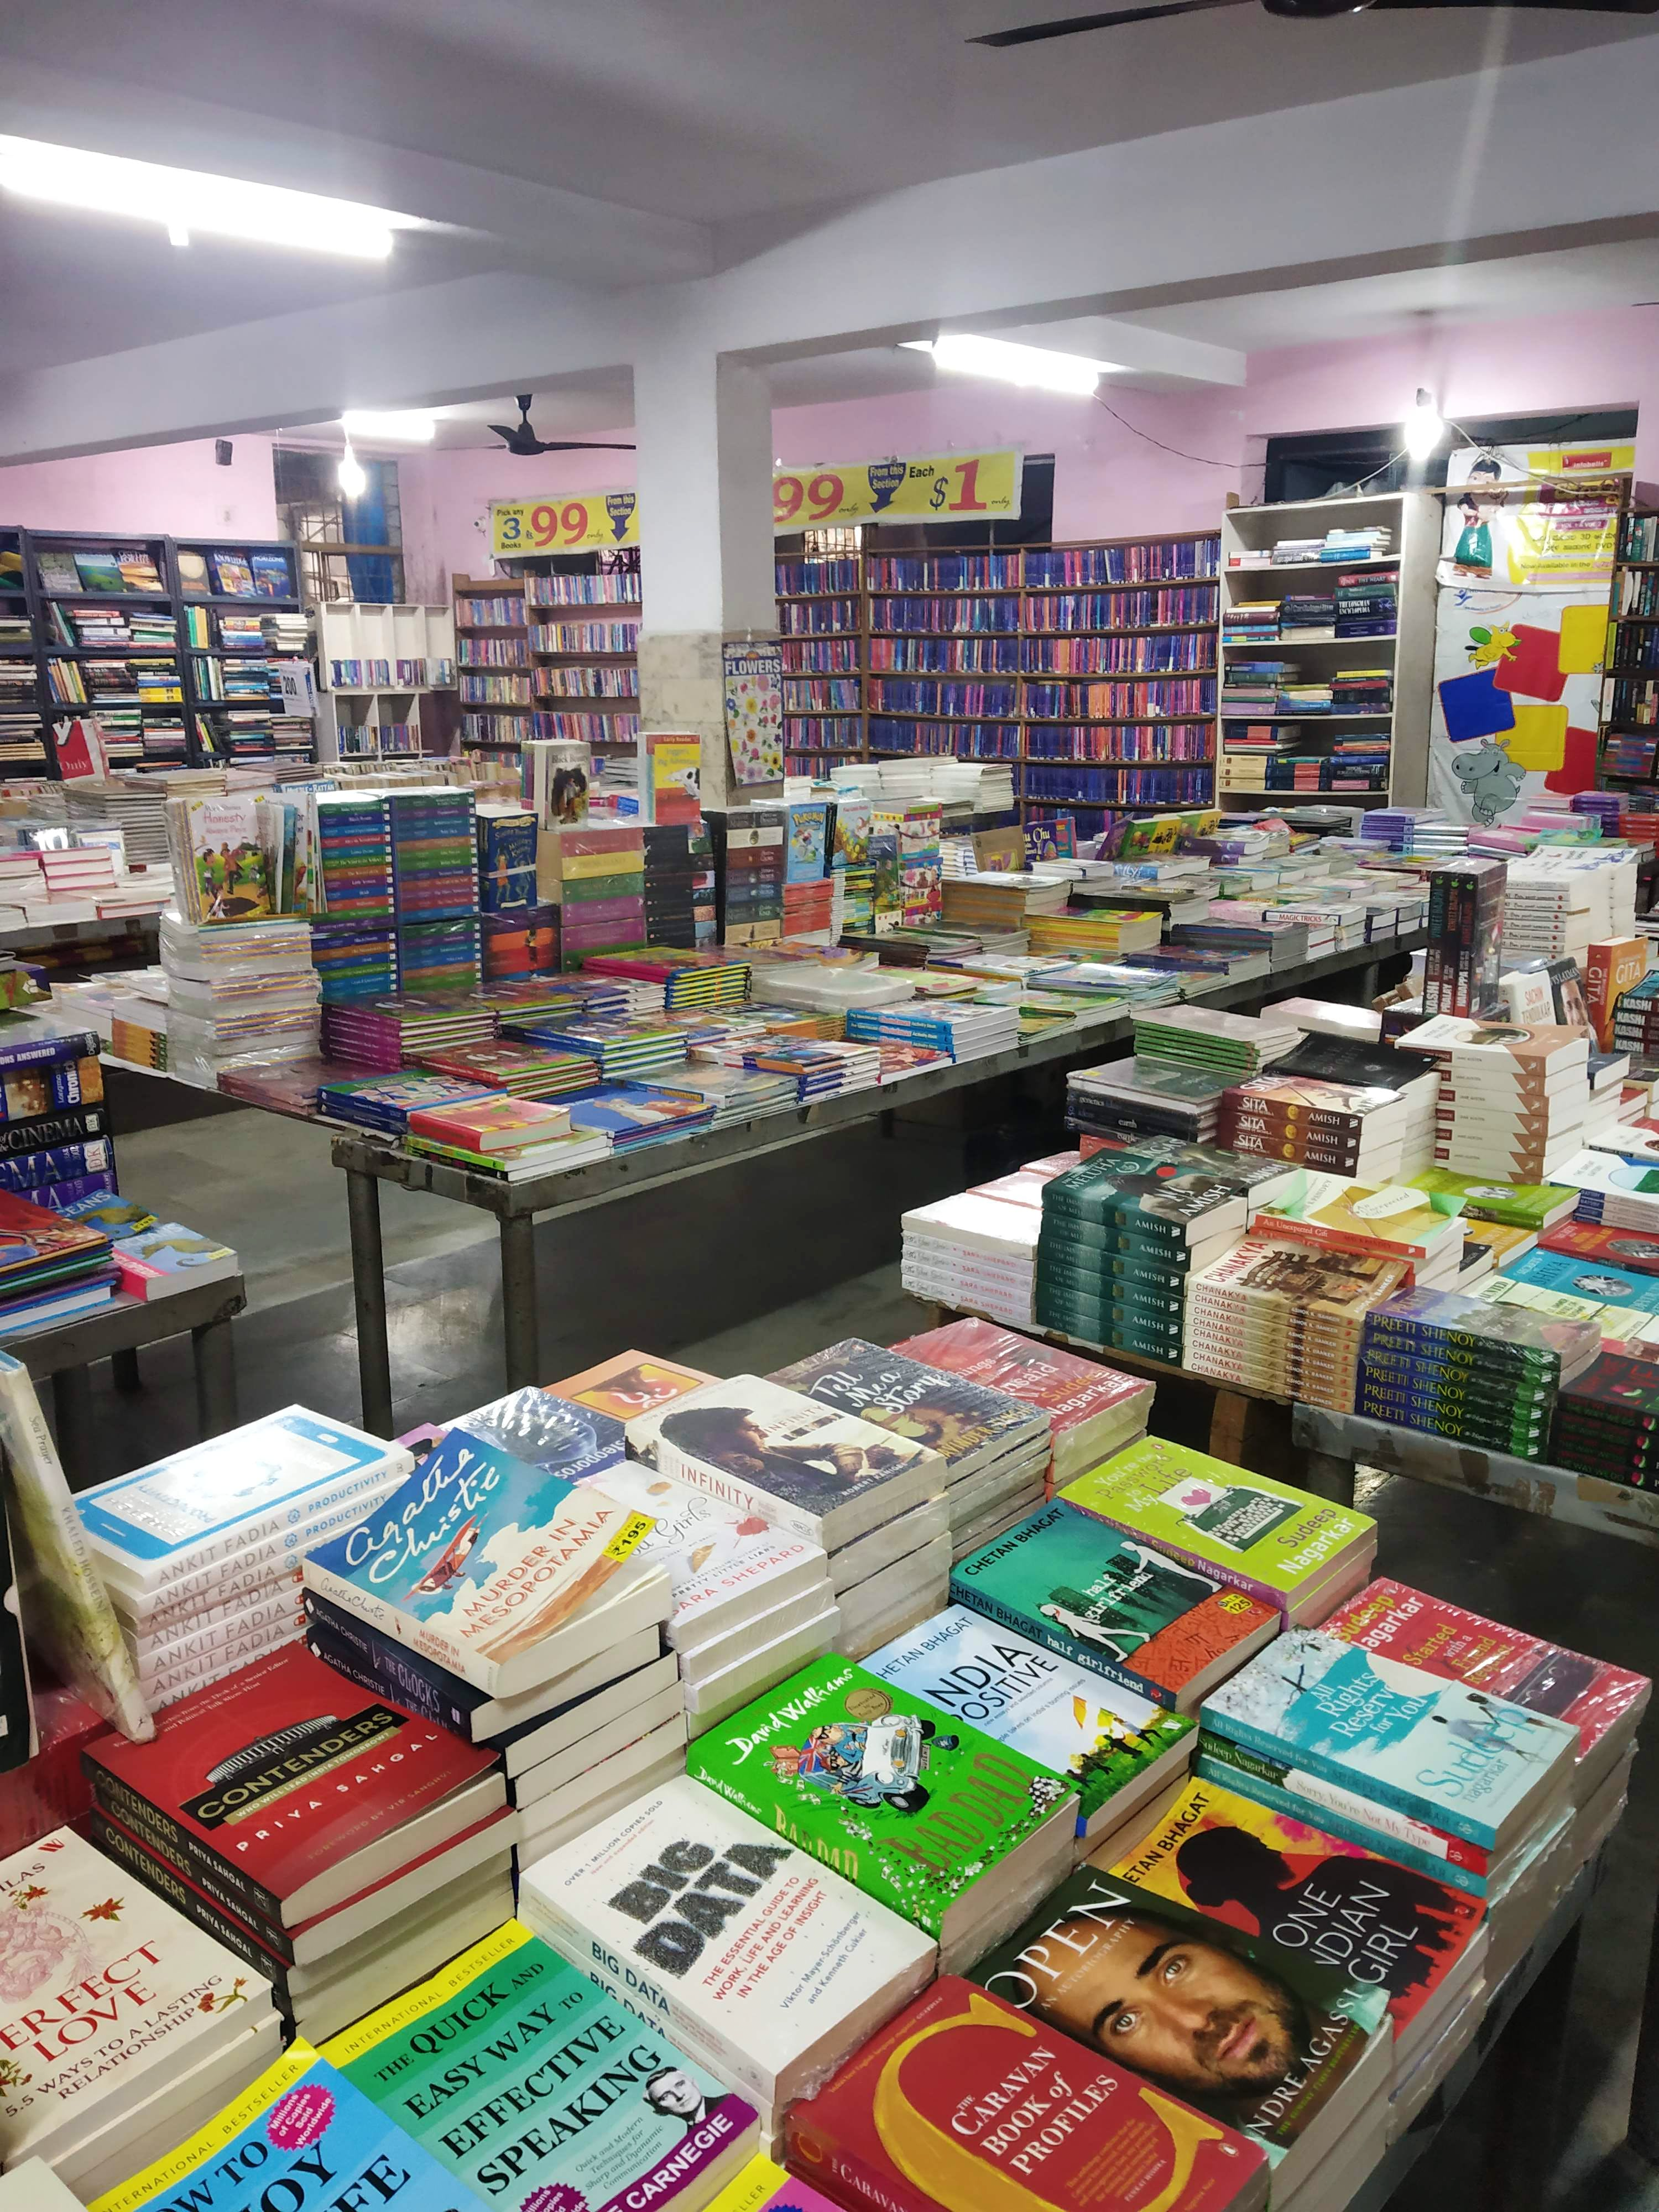 Retail,Bookselling,Convenience store,Product,Building,Supermarket,Stationery,Trade,Customer,Outlet store